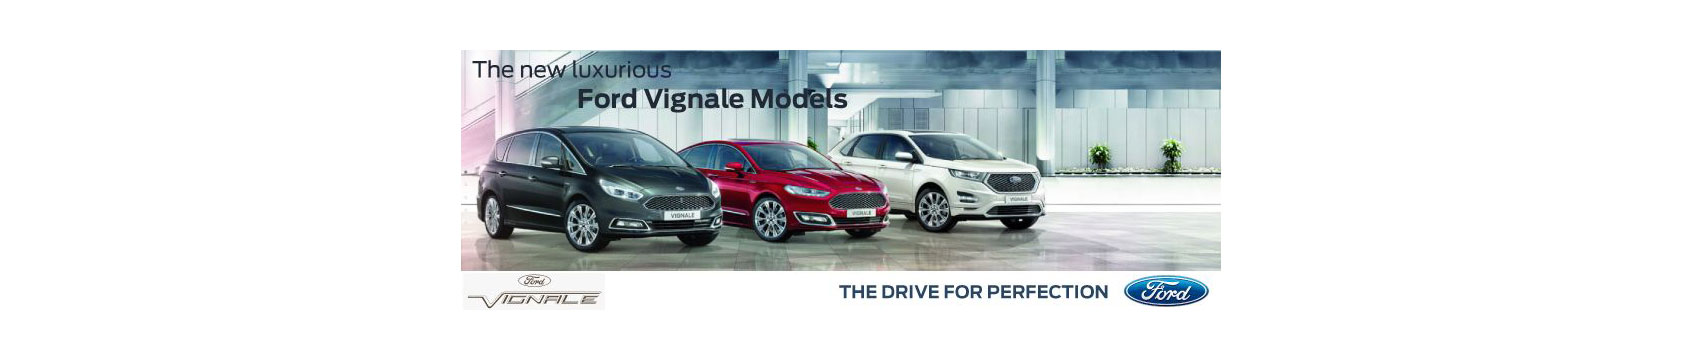 New Luxurious Ford Vignale Models | Fairway Motors